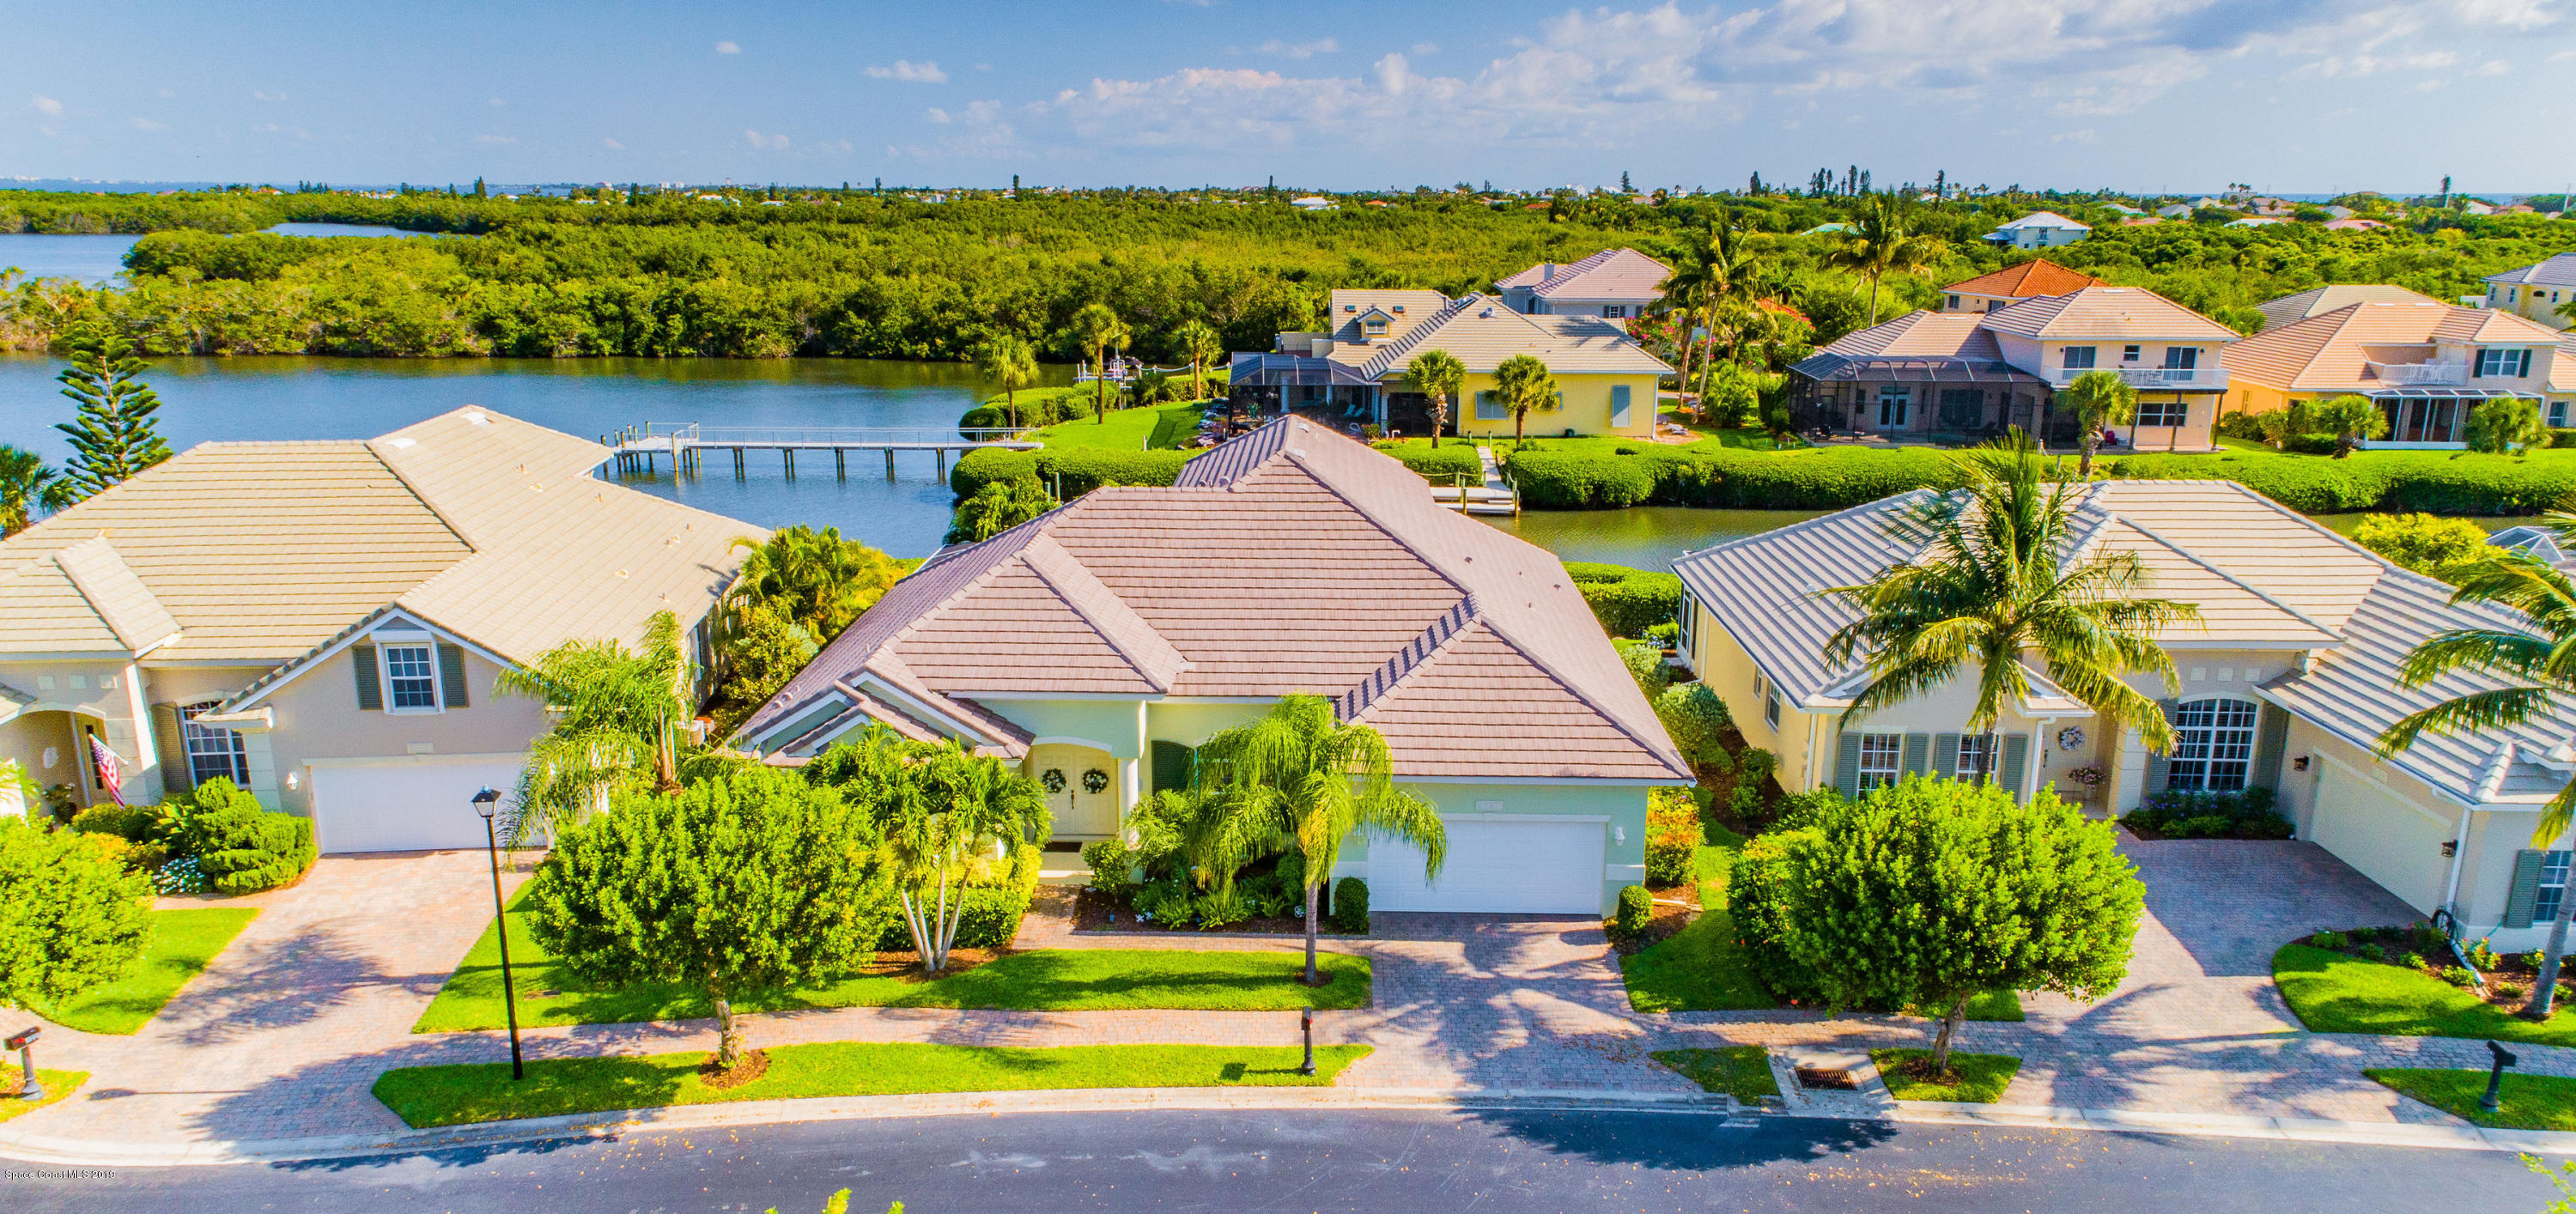 Single Family Homes for Sale at 5237 Solway Melbourne Beach, Florida 32951 United States